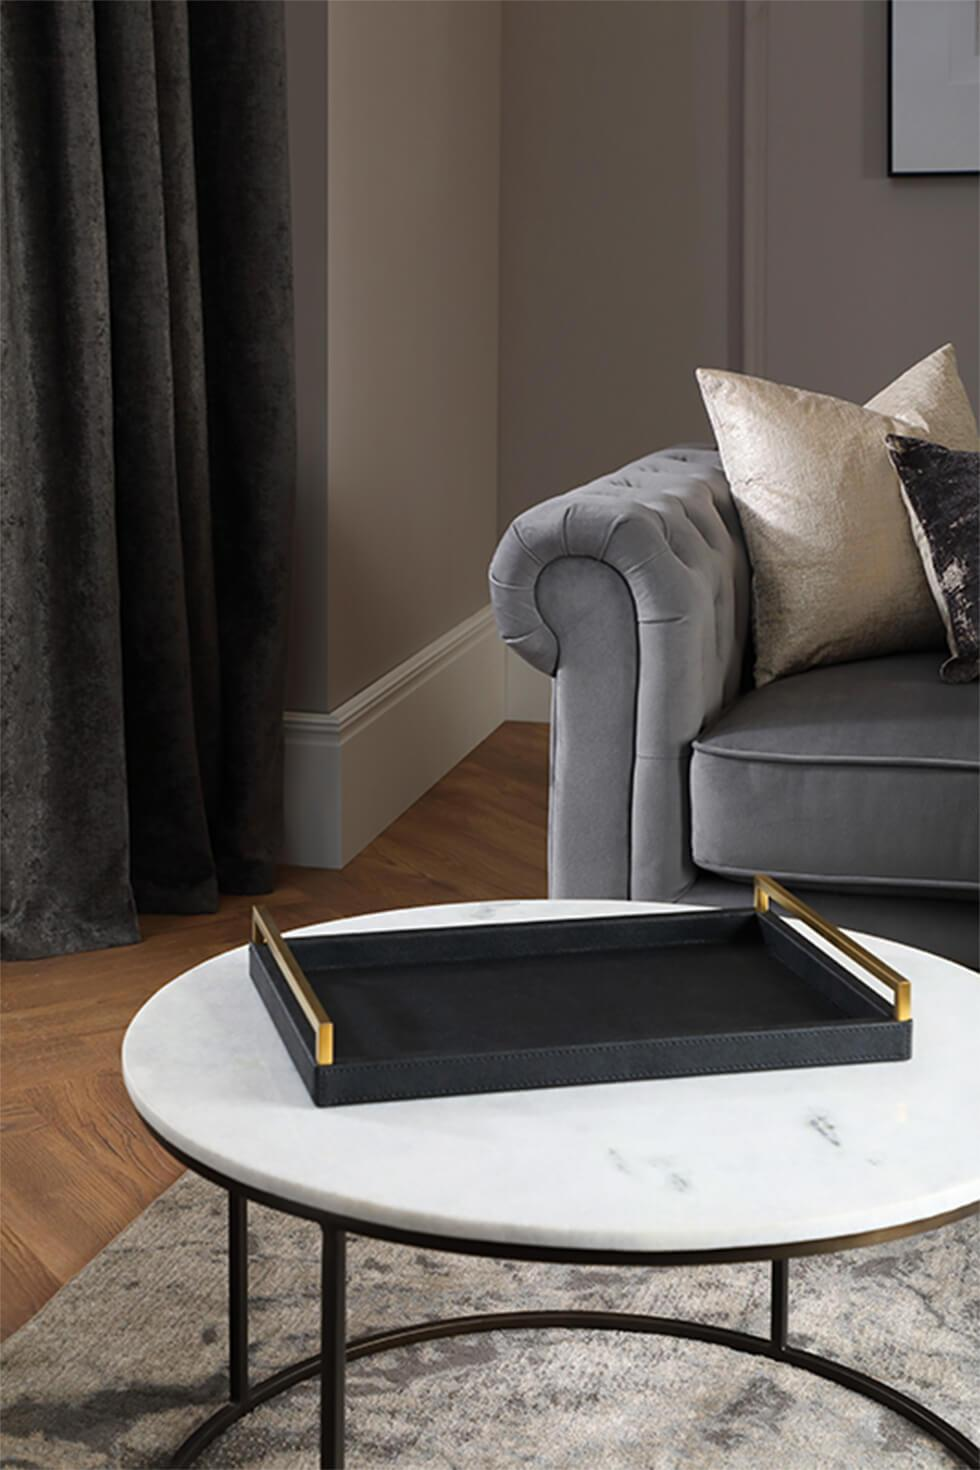 Marble coffee table with dark tray